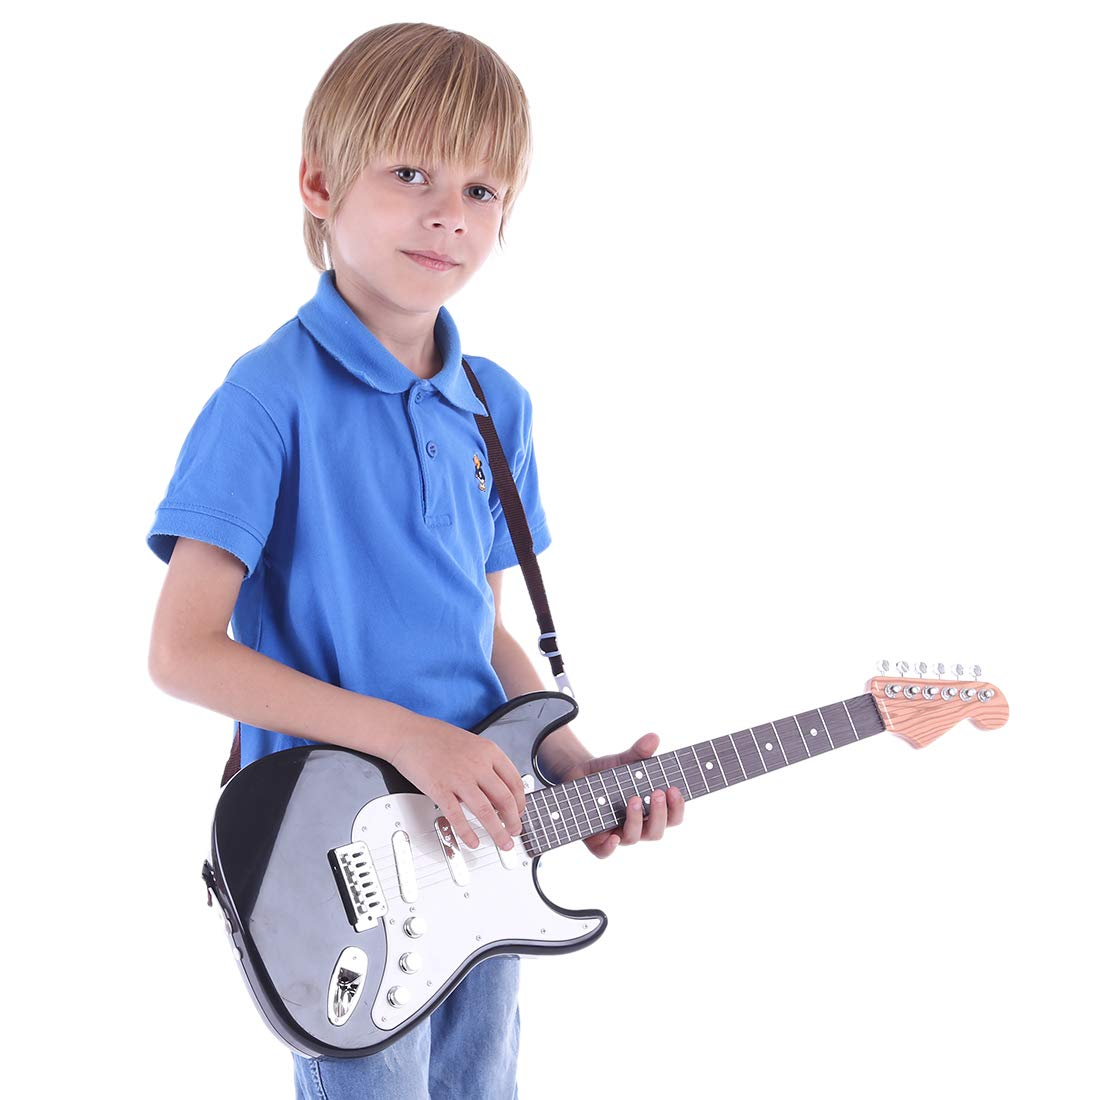 Amazon.com: Yamix Kids Guitar, 6 Strings Electric Guitar for Kids Musical Instruments Toy Guitar (Black + White): Toys & Games